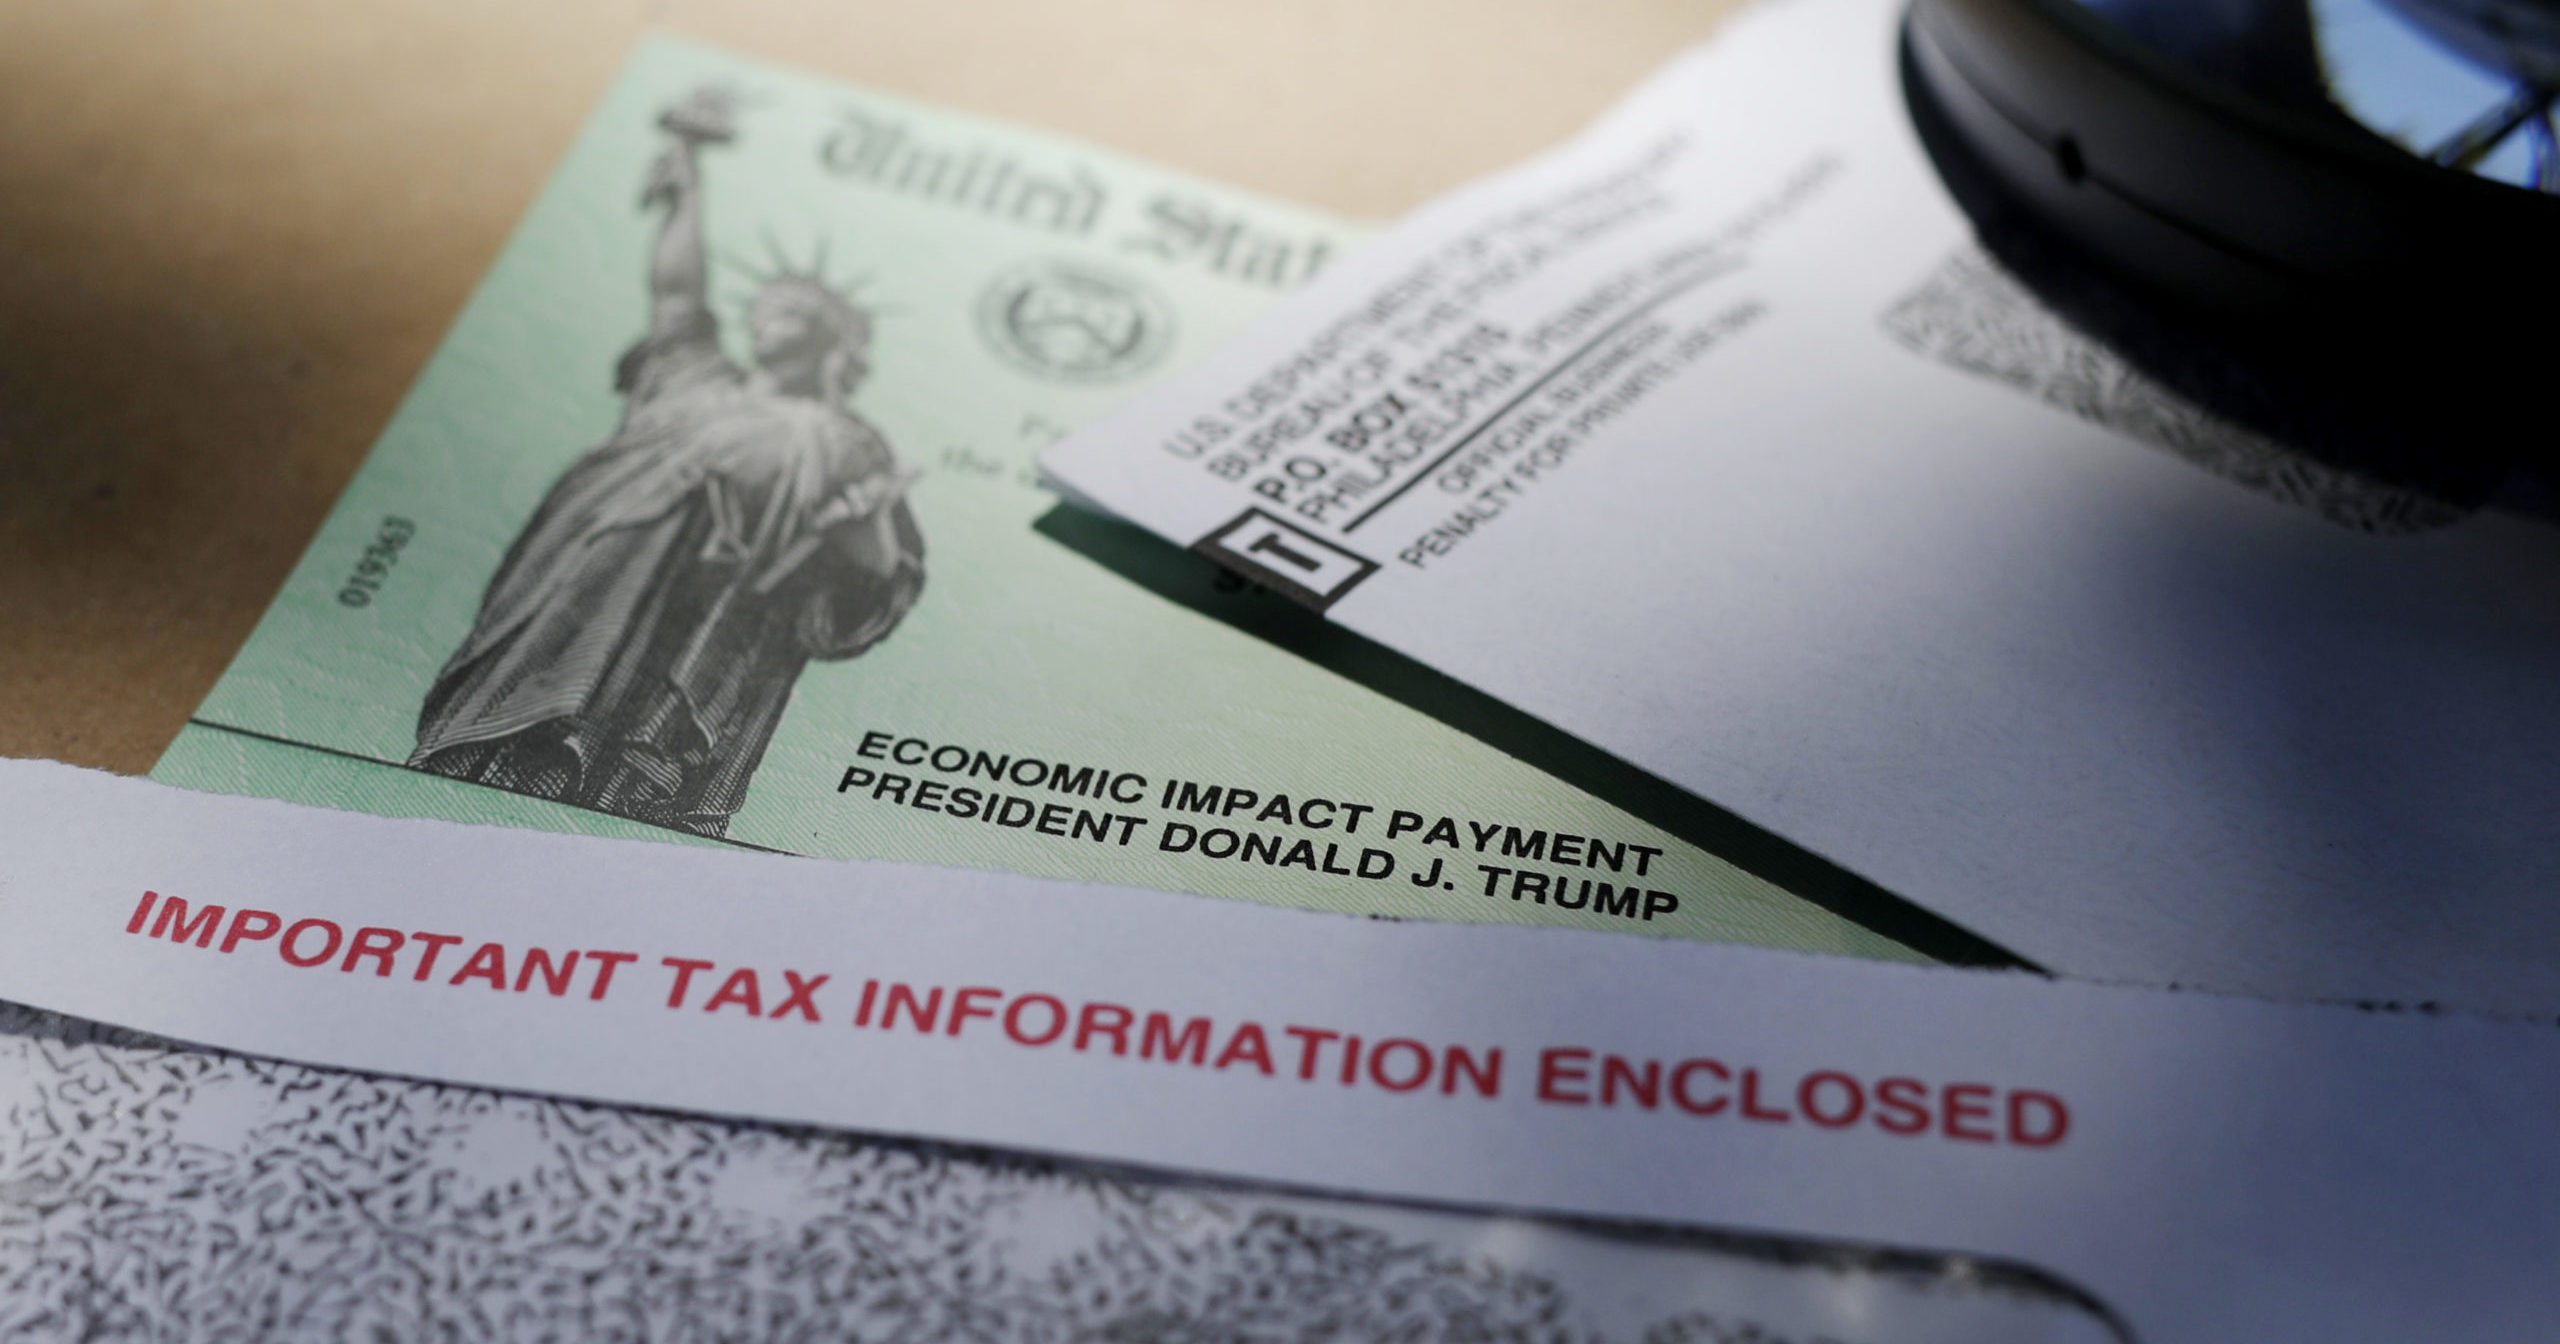 President Donald Trump's name is seen on a stimulus check issued by the IRS to help combat the adverse economic effects of the COVID-19 government shutdowns.